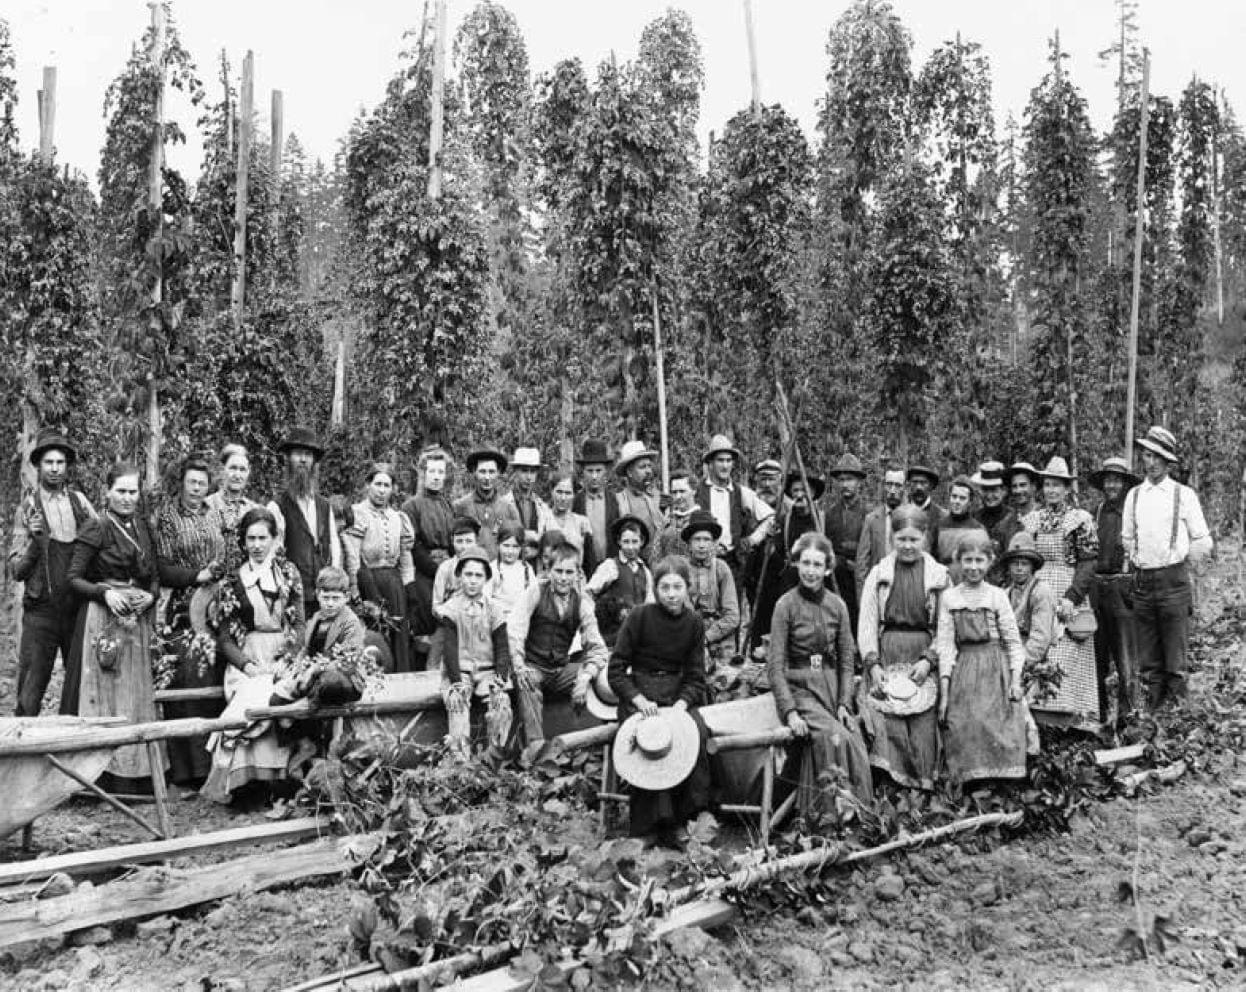 Pickers, Oregon City, circa 1890